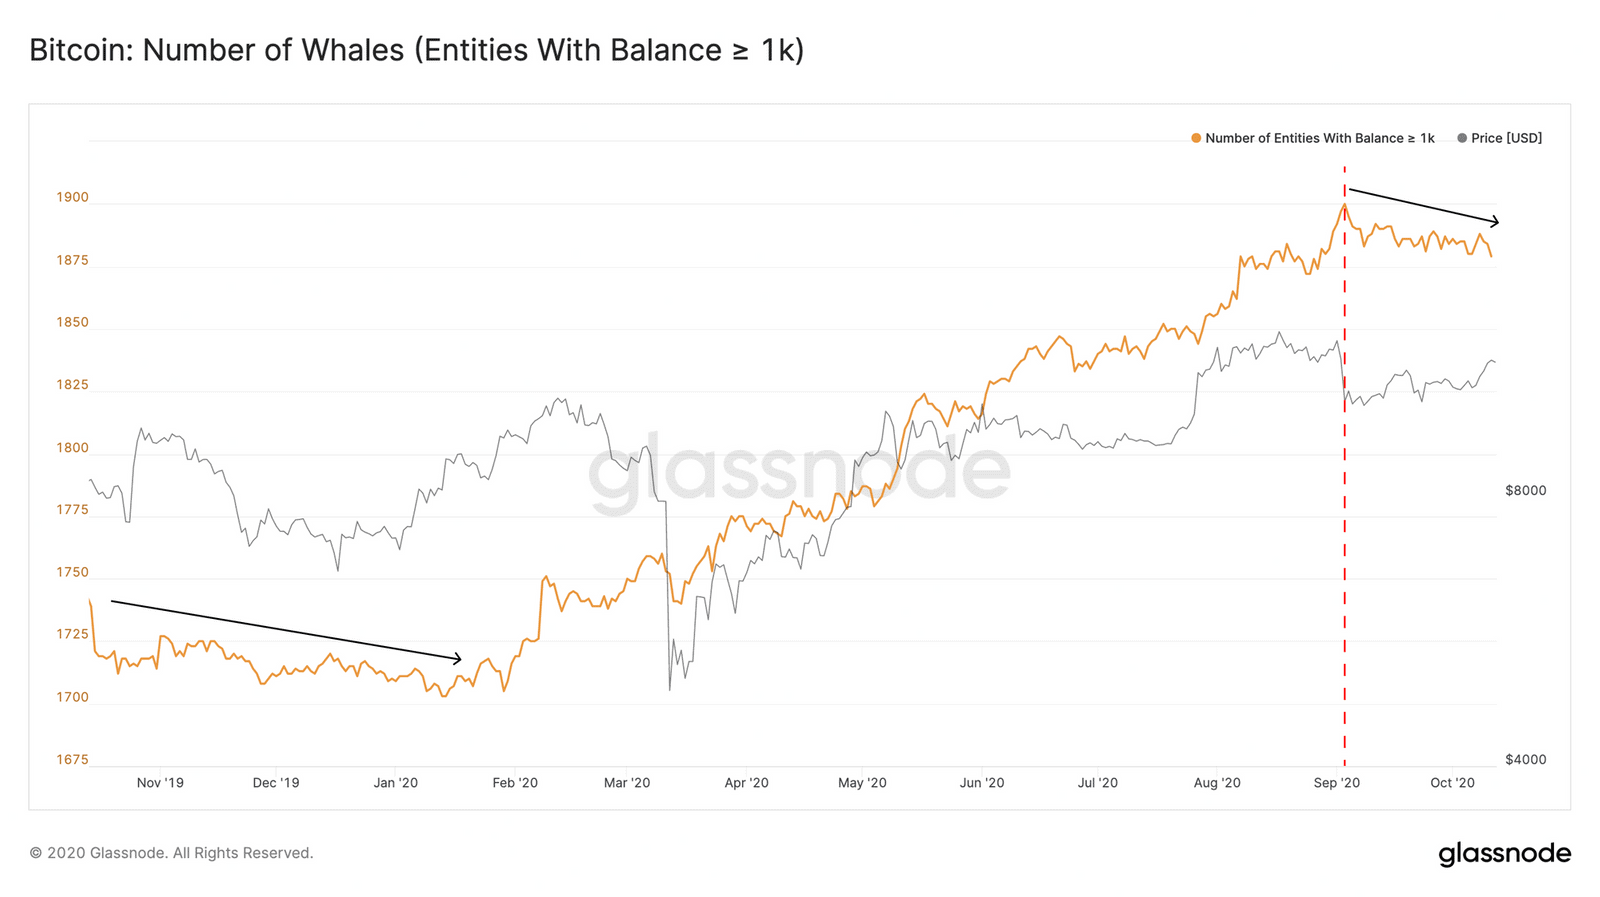 Bitcoin Whales Accumulation. Source: Glassnode